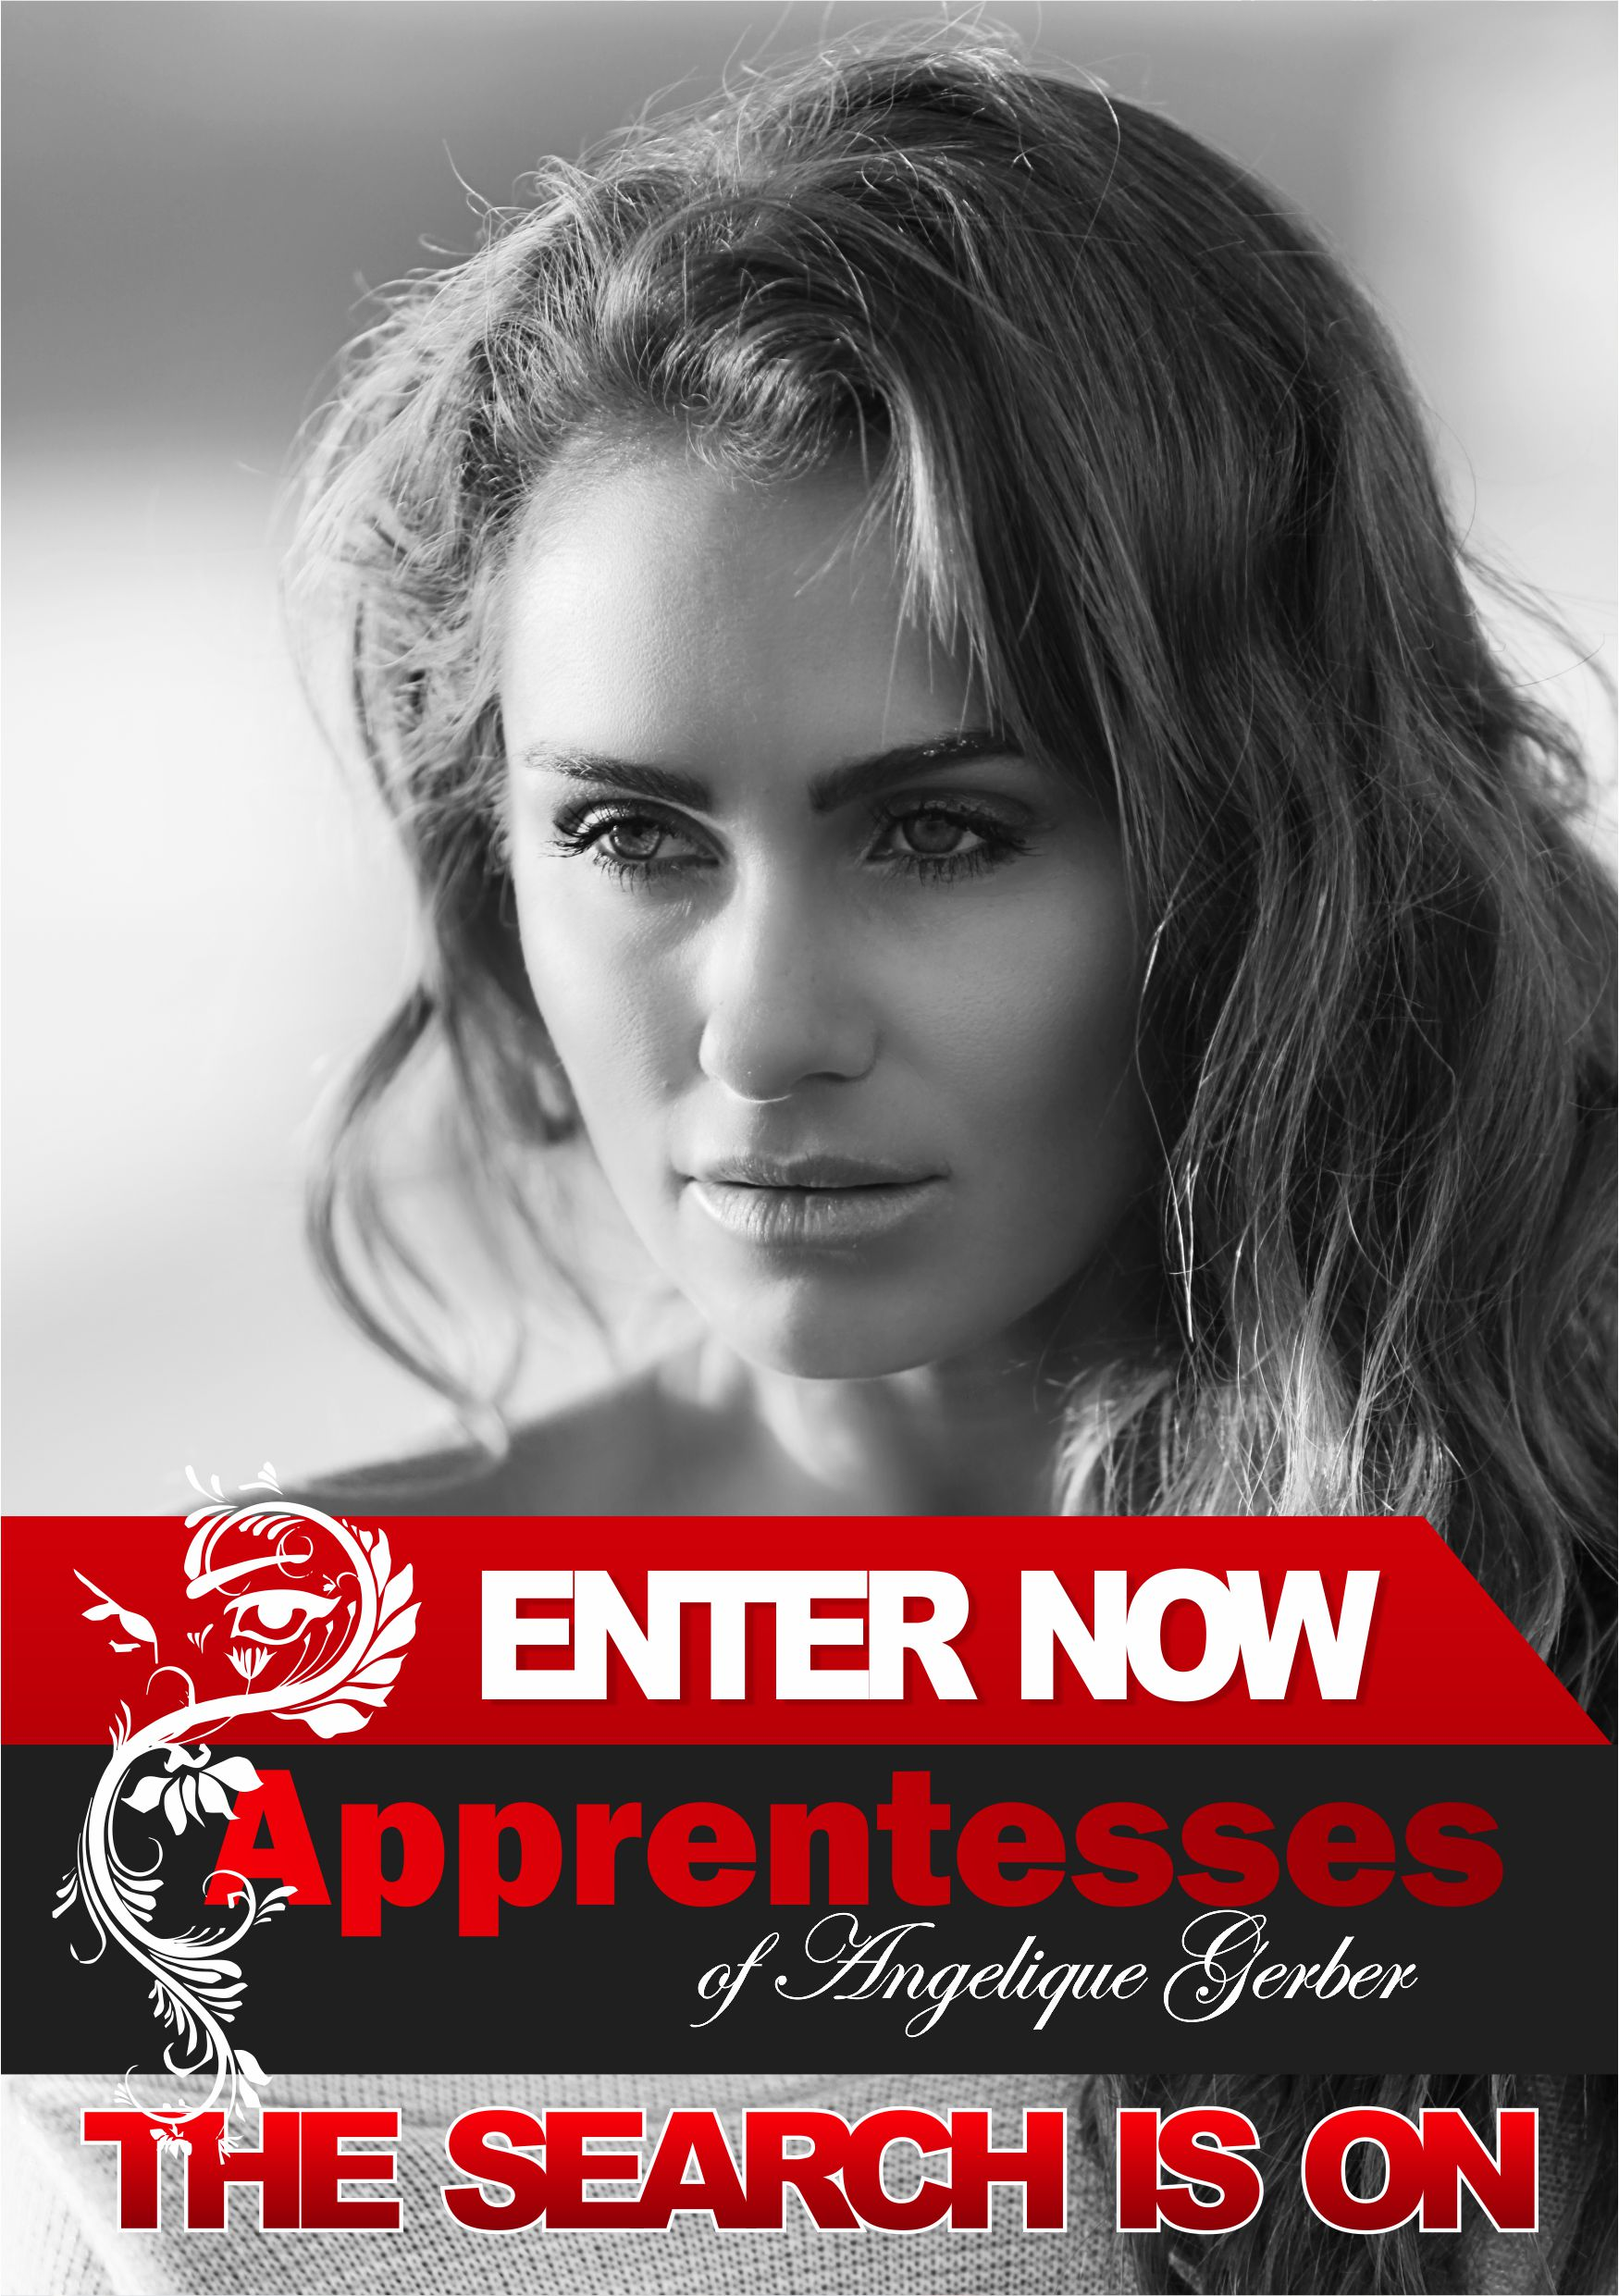 Peri-Peri-Creative-Apprentesses-of-Angelique-Gerber A5 Advert Small_2